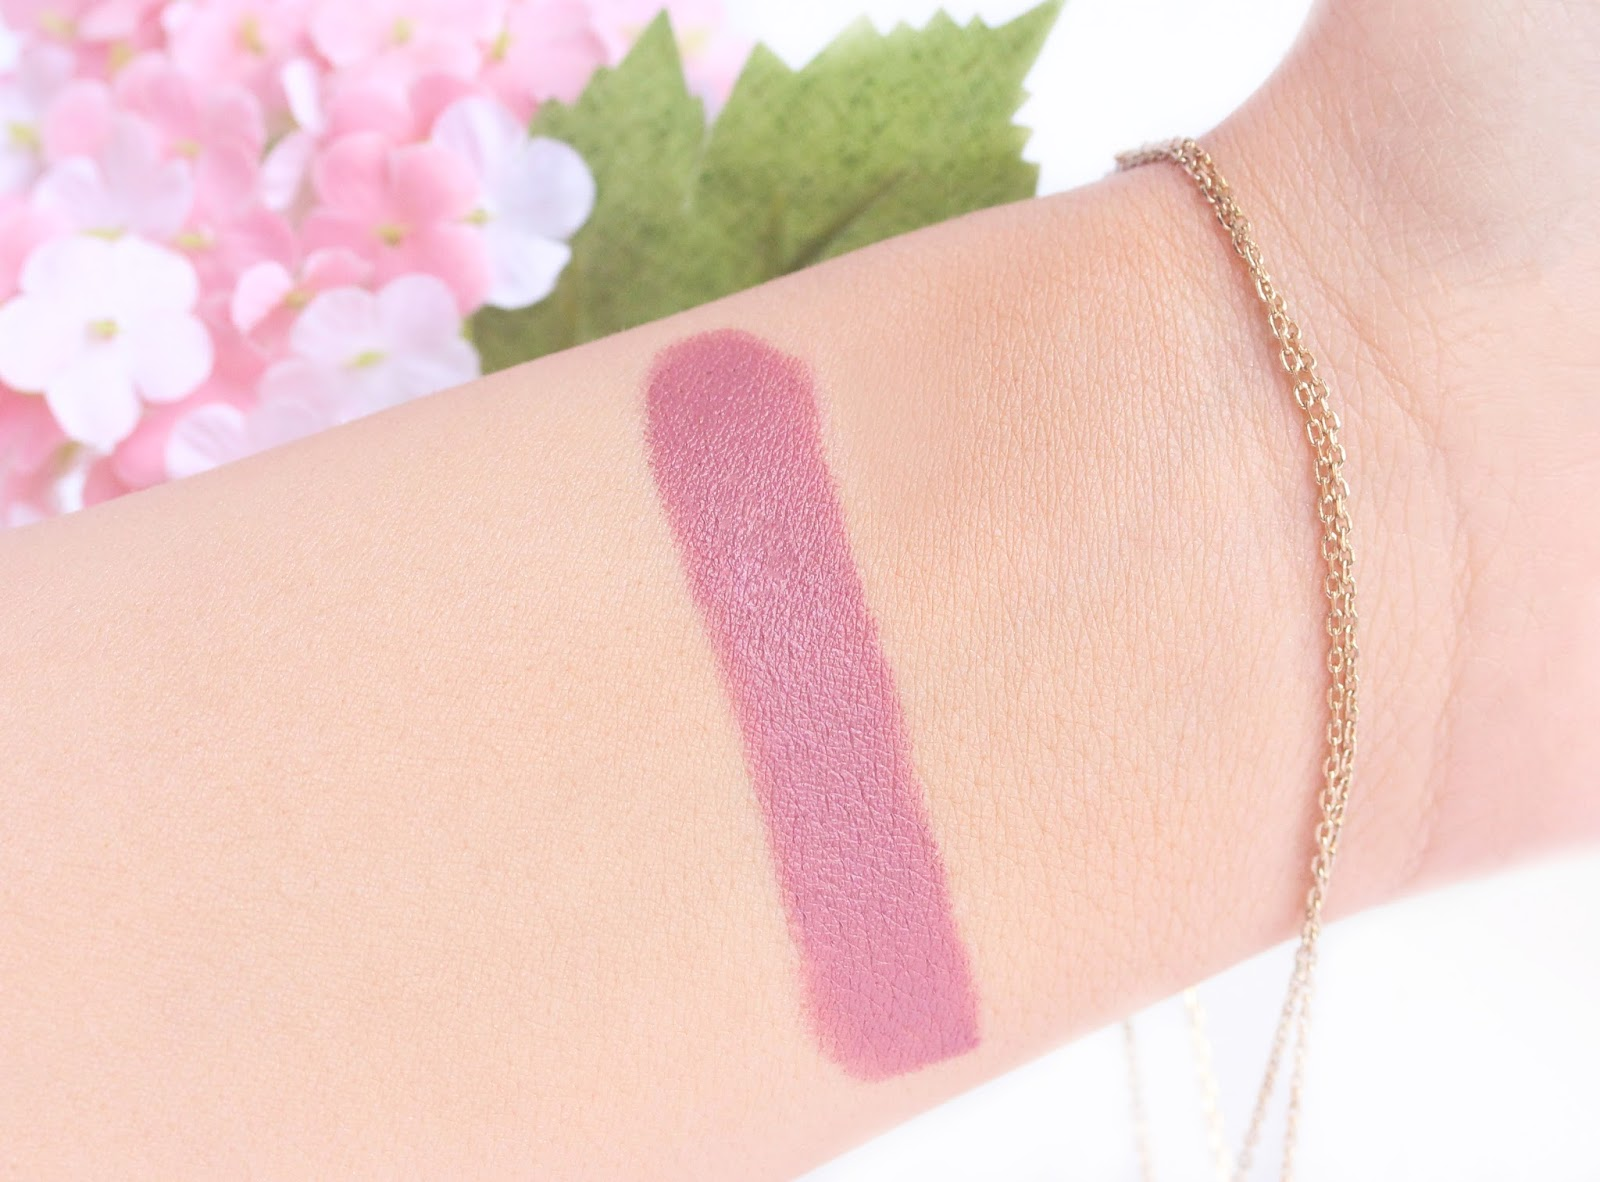 NYX Whipped Caviar Matte Lipstick Swatches